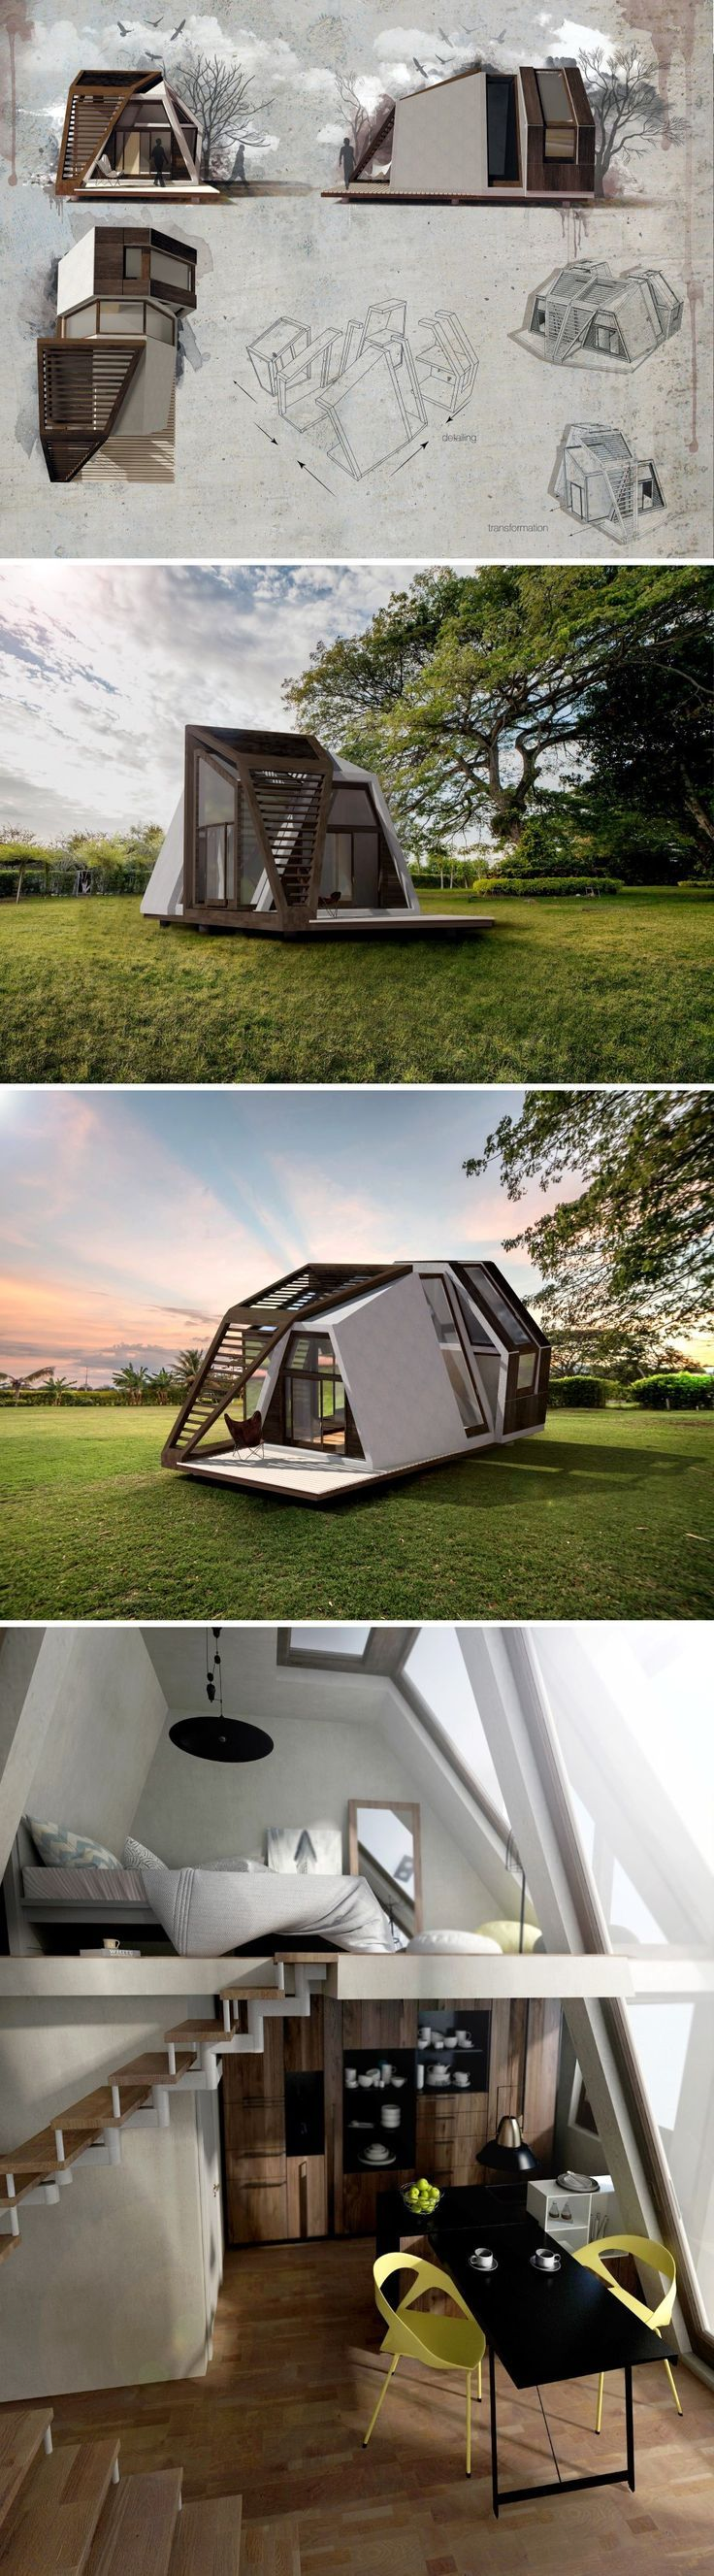 Beautiful Tiny House! You don't build the Mobile home. You buy it, and it ships to your location, assembled and ready to use! The Mobile House is therefore a product, rather than a space, meaning it isn't technically real estate.